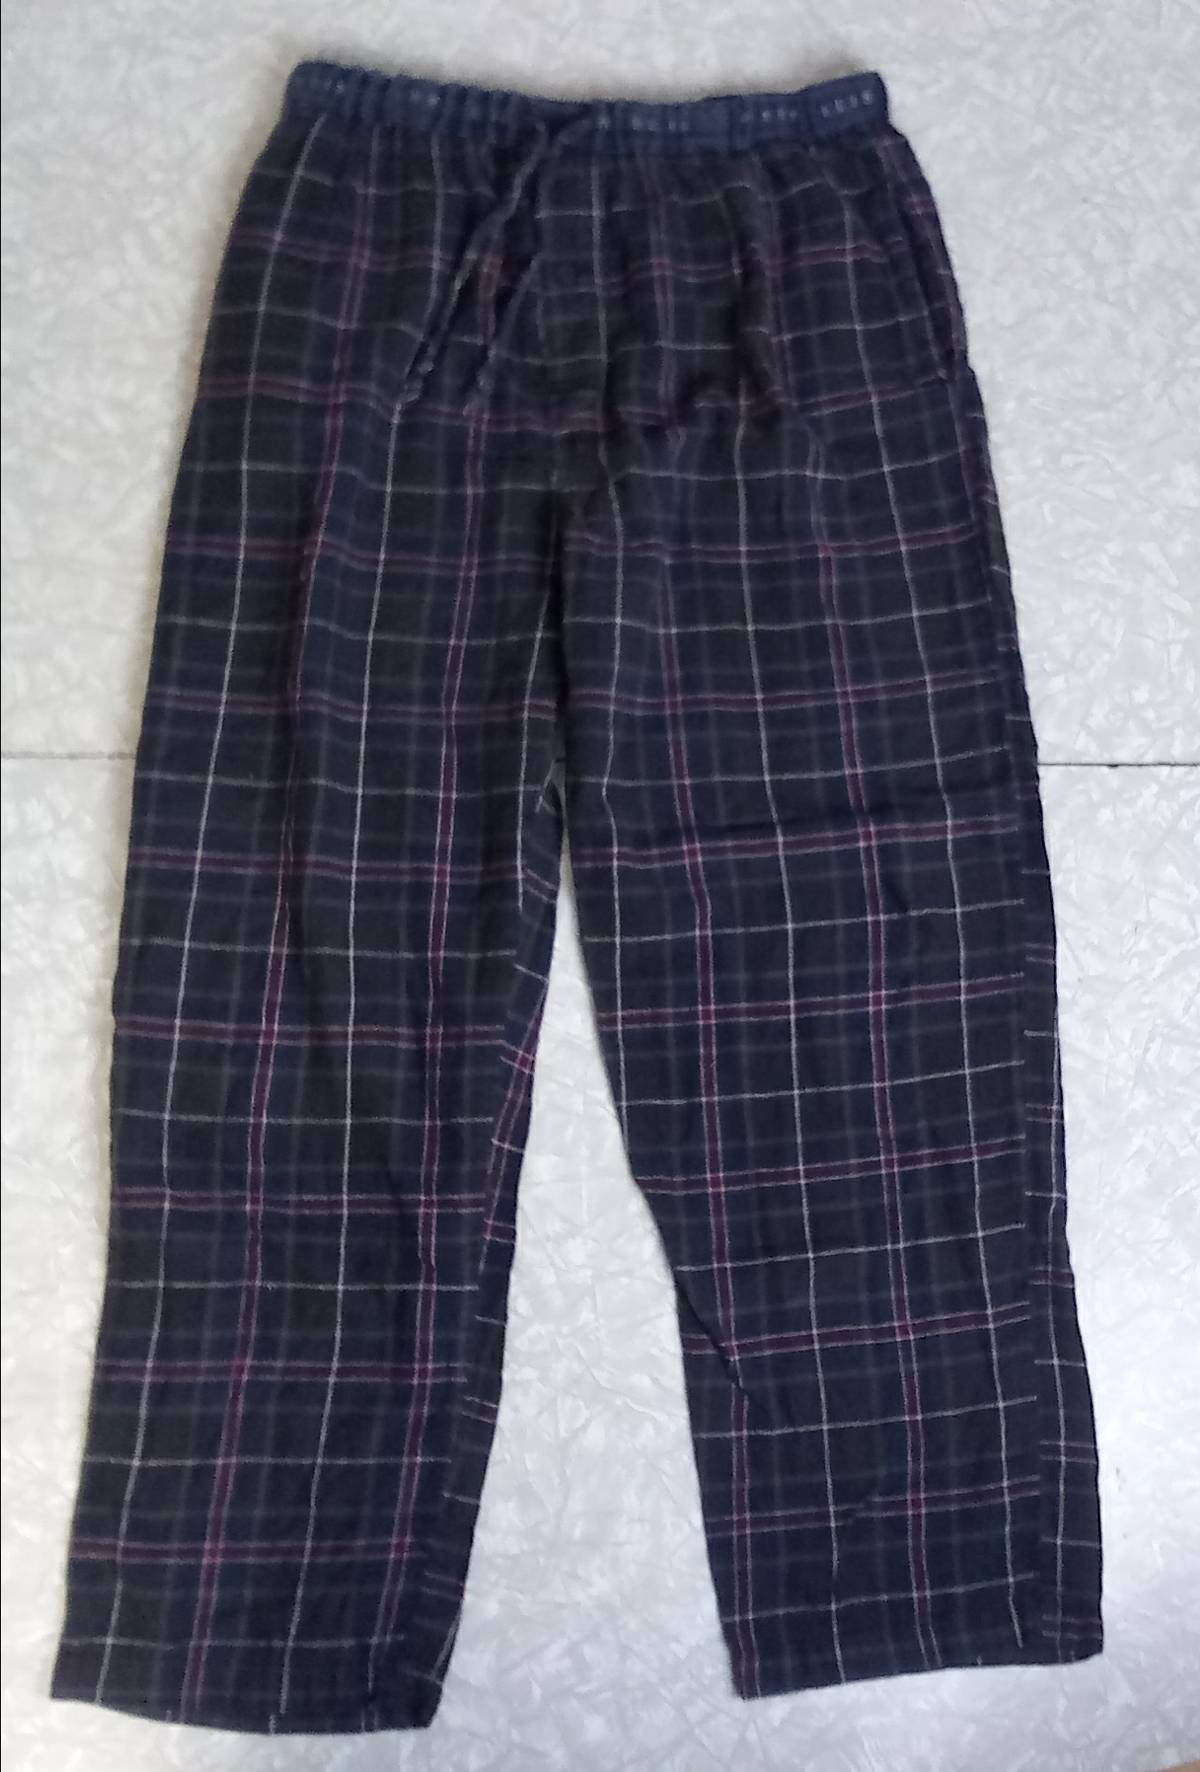 Unlisted PERRY ELLIS Men s L Sleepwear Lounge Flannel Pajama Pants Green  Navy Blue Maroon Size 38 - Casual Pants for Sale - Grailed 105292c6b